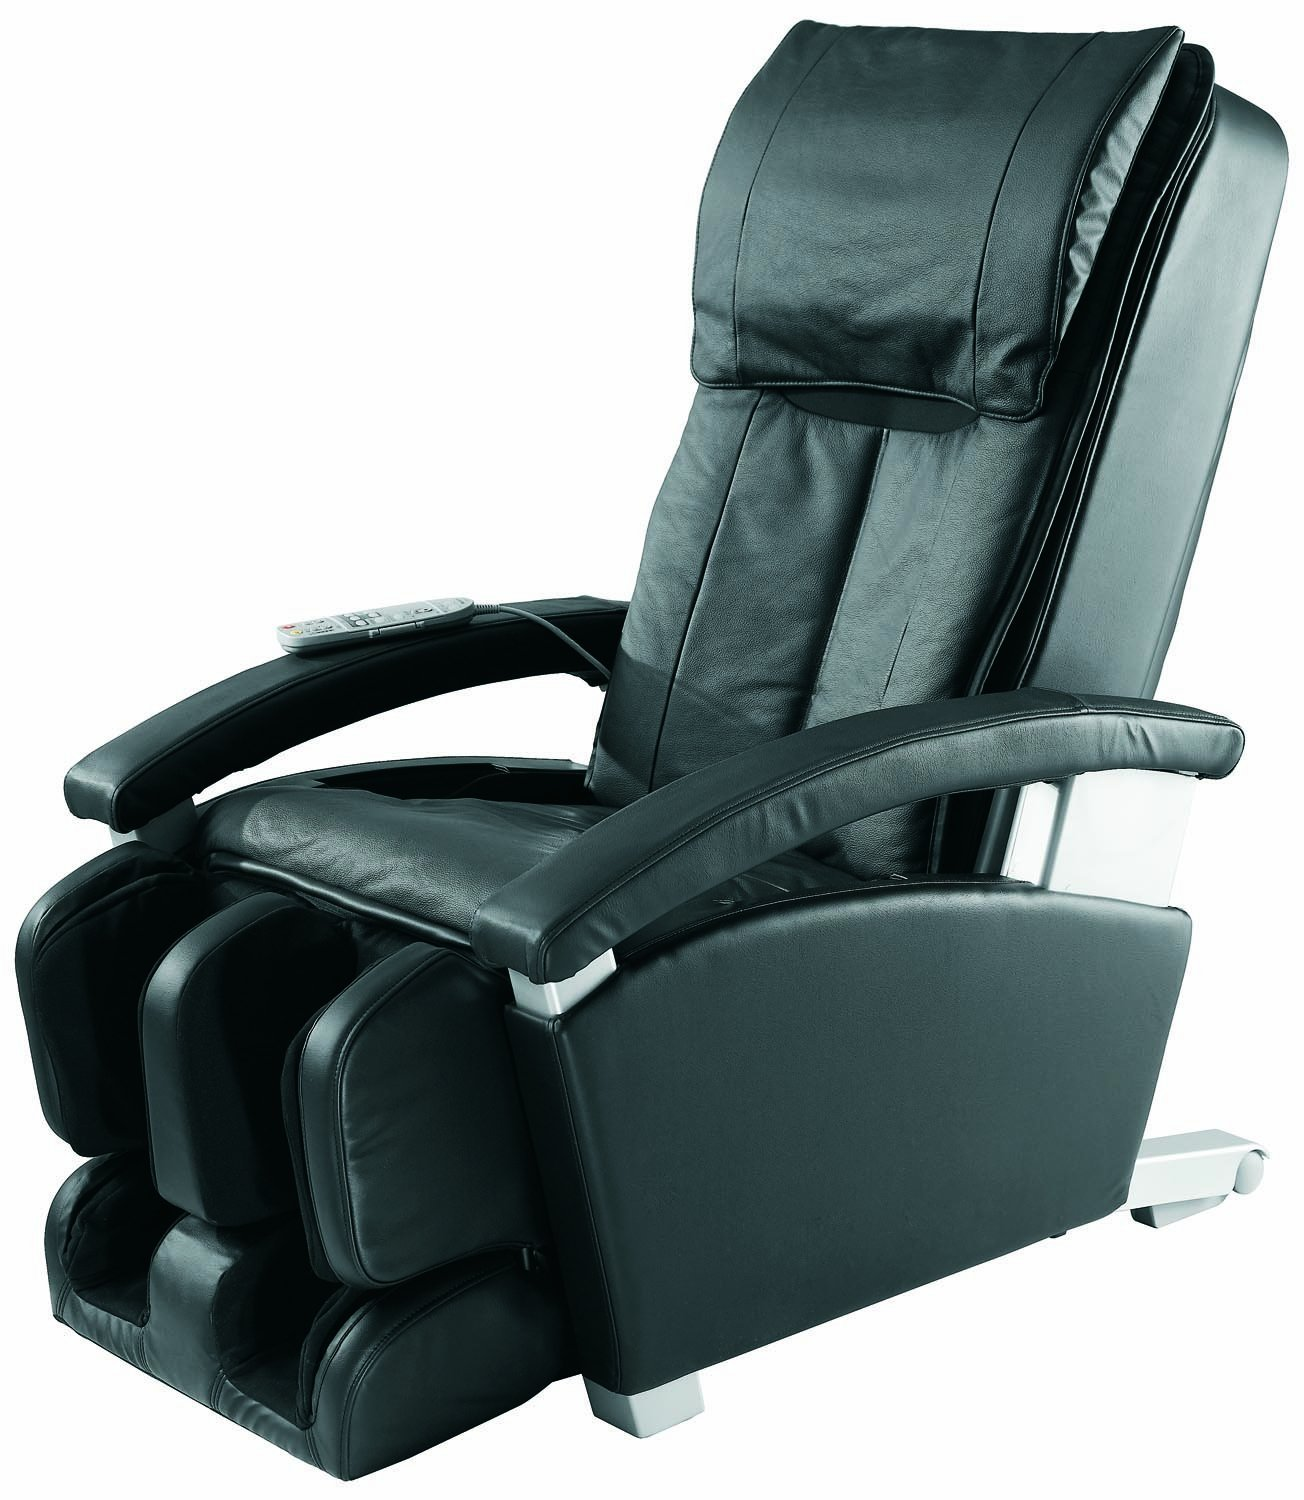 Message Chairs Panasonic Massage Chair Ep1285kl Review Massage Chair Hq